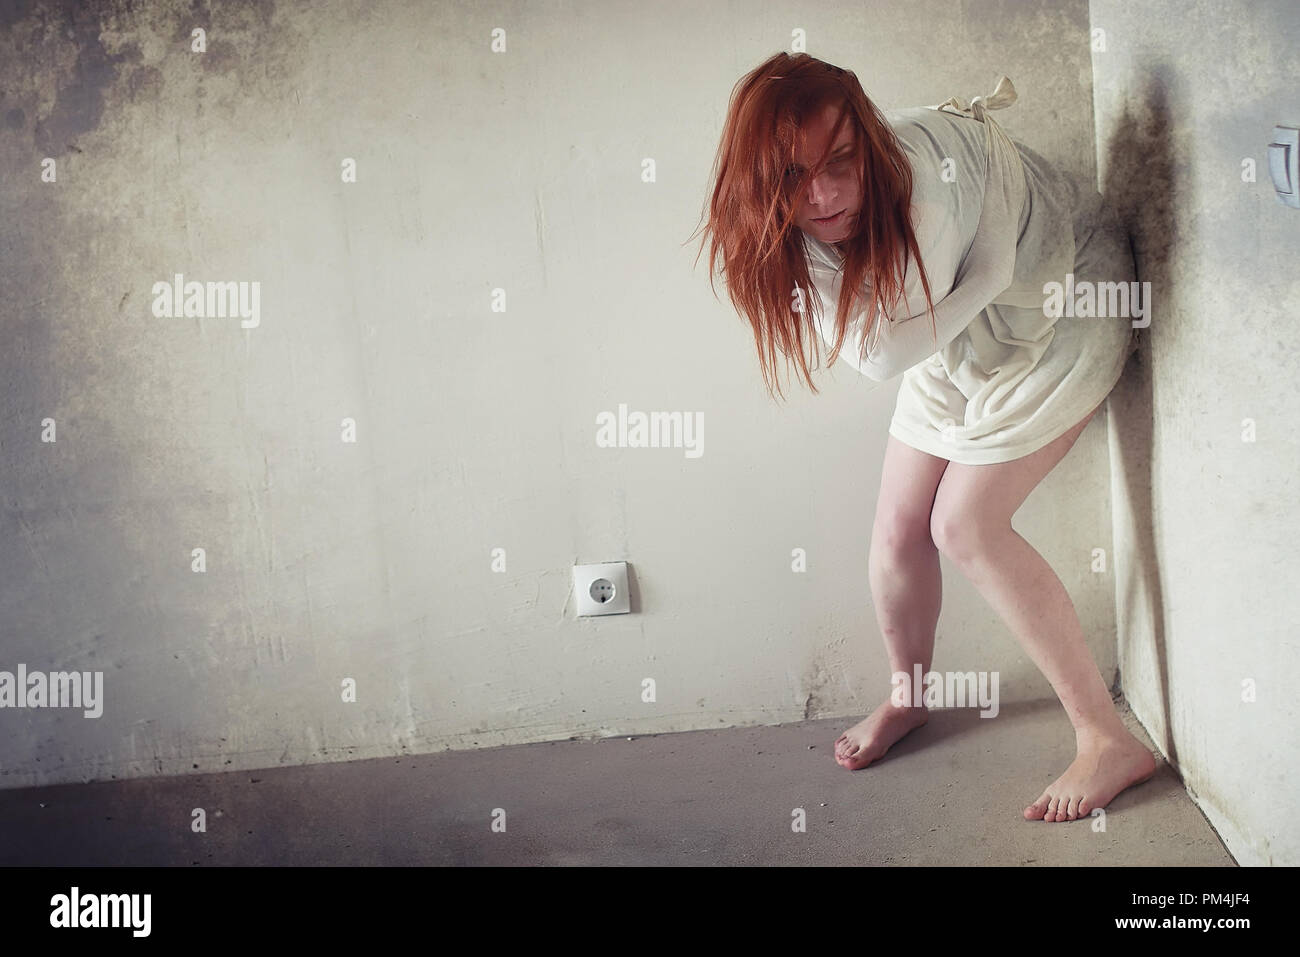 A girl with red hair in a shirt. Domestic violence and sacrifice. Girl with a sick psyche. - Stock Image